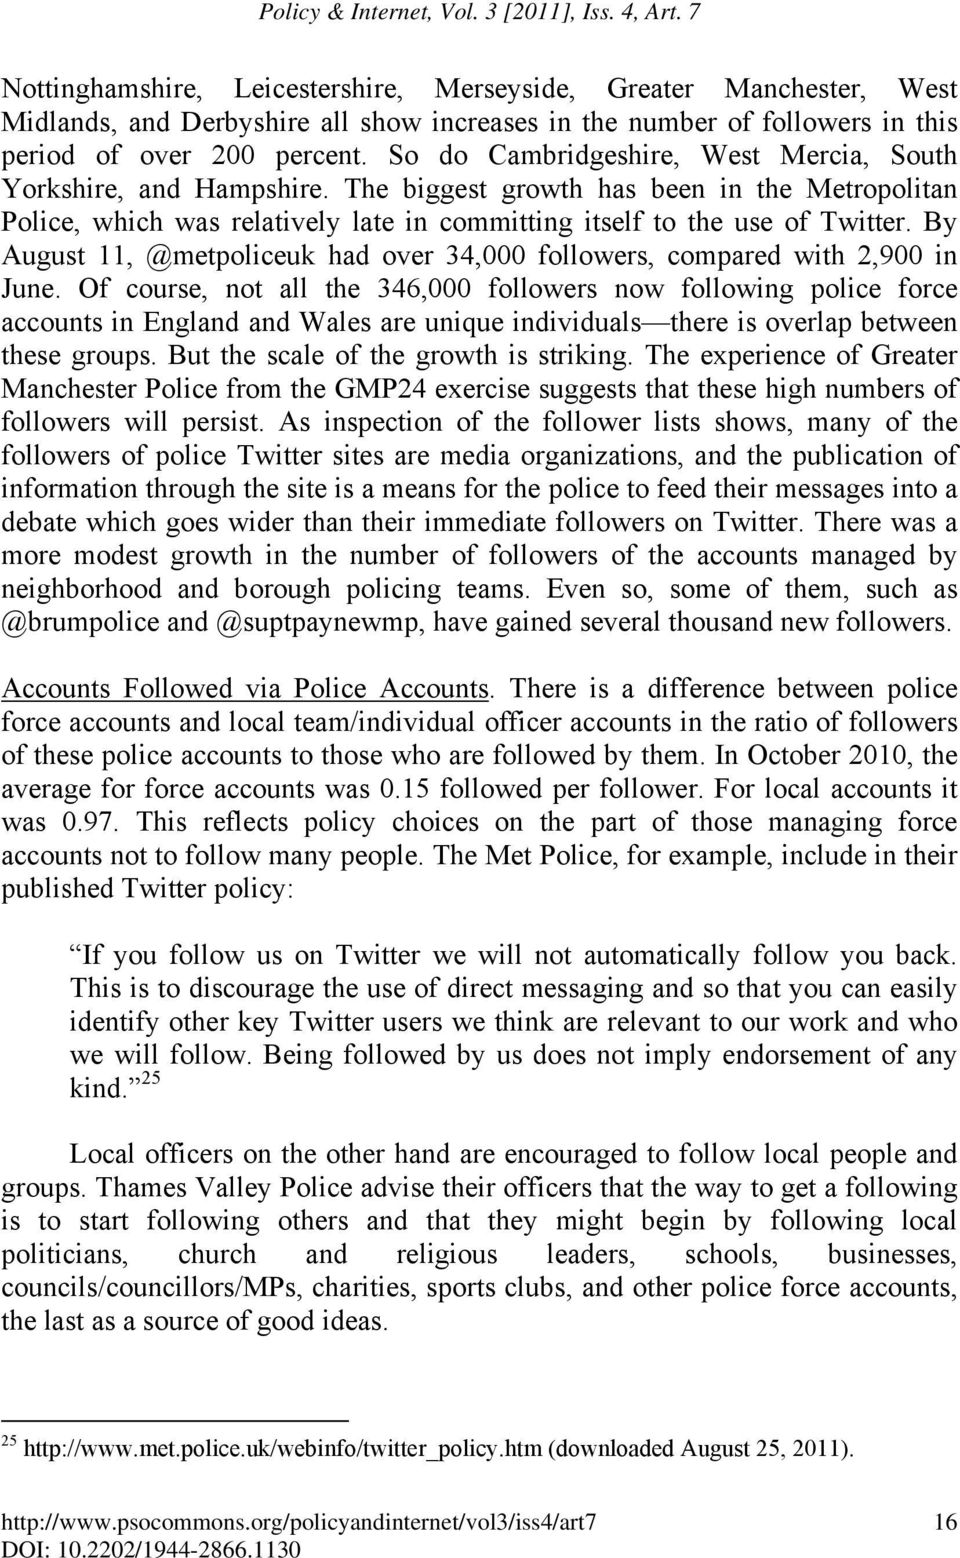 So do Cambridgeshire, West Mercia, South Yorkshire, and Hampshire. The biggest growth has been in the Metropolitan Police, which was relatively late in committing itself to the use of Twitter.